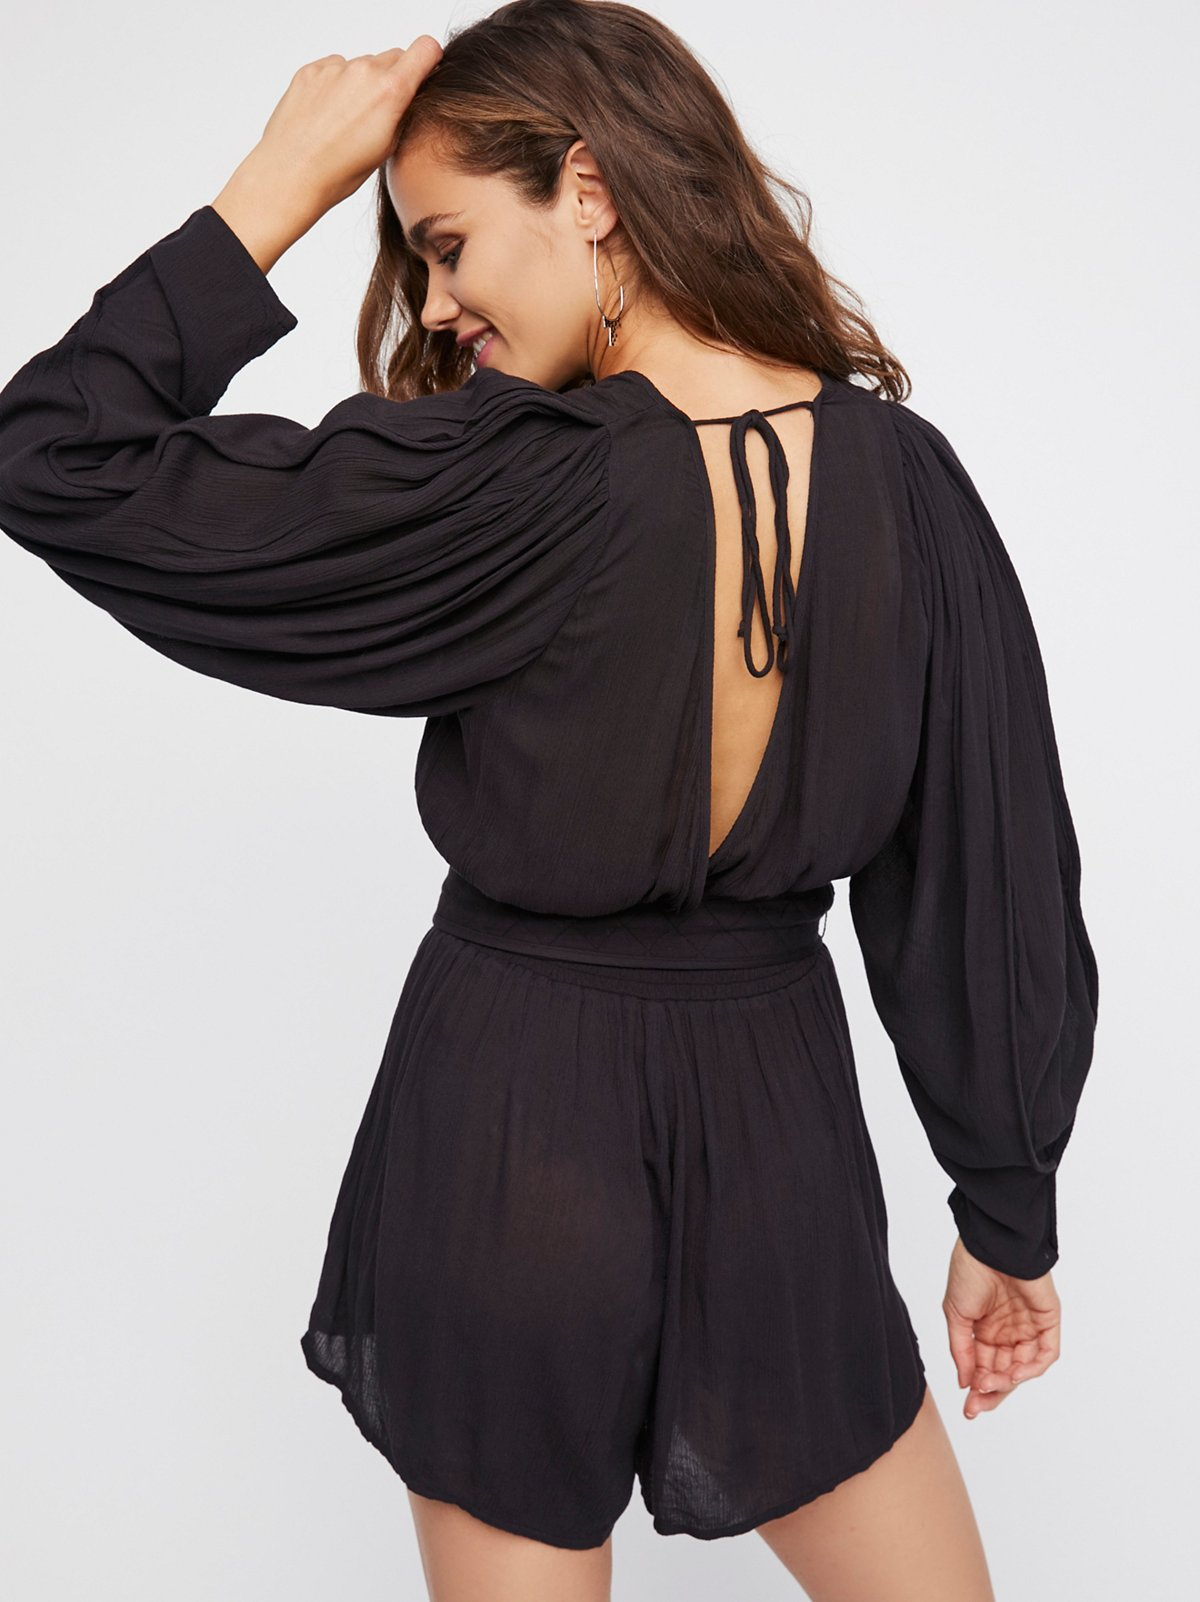 Just Because Playsuit